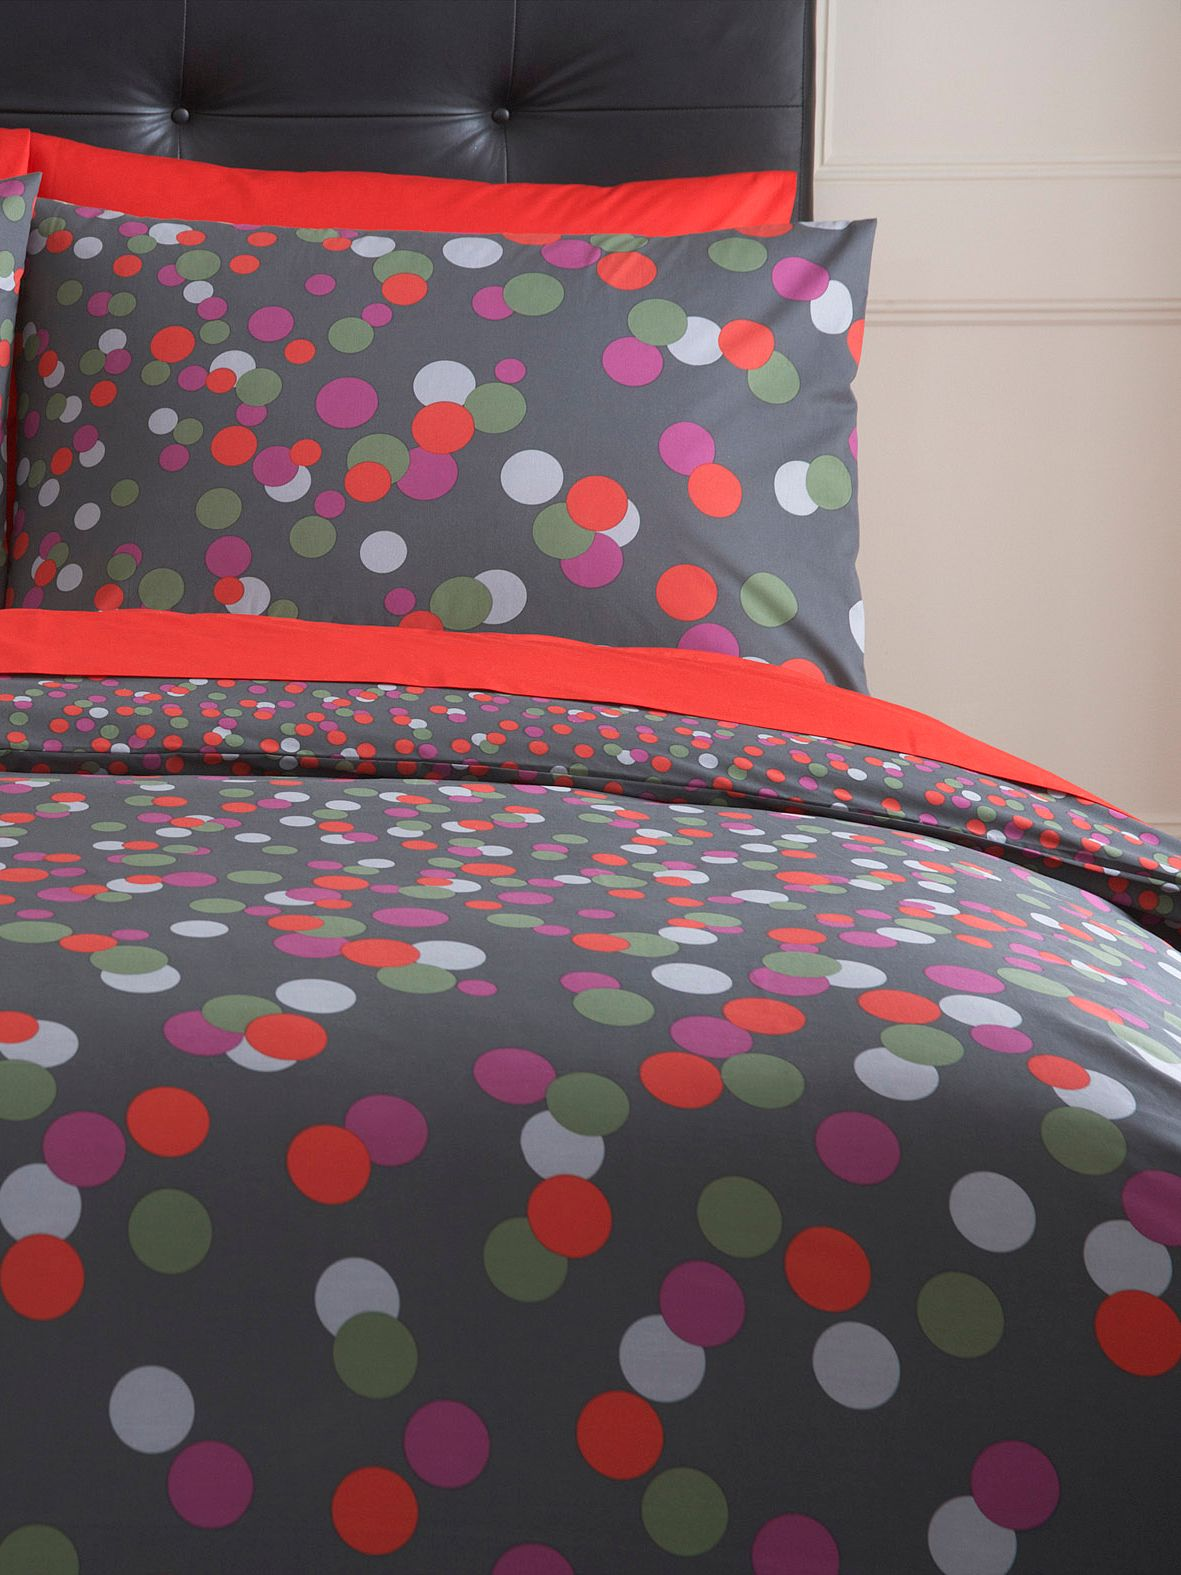 Compare Prices of Duvet Covers, read Duvet Cover Reviews & buy online